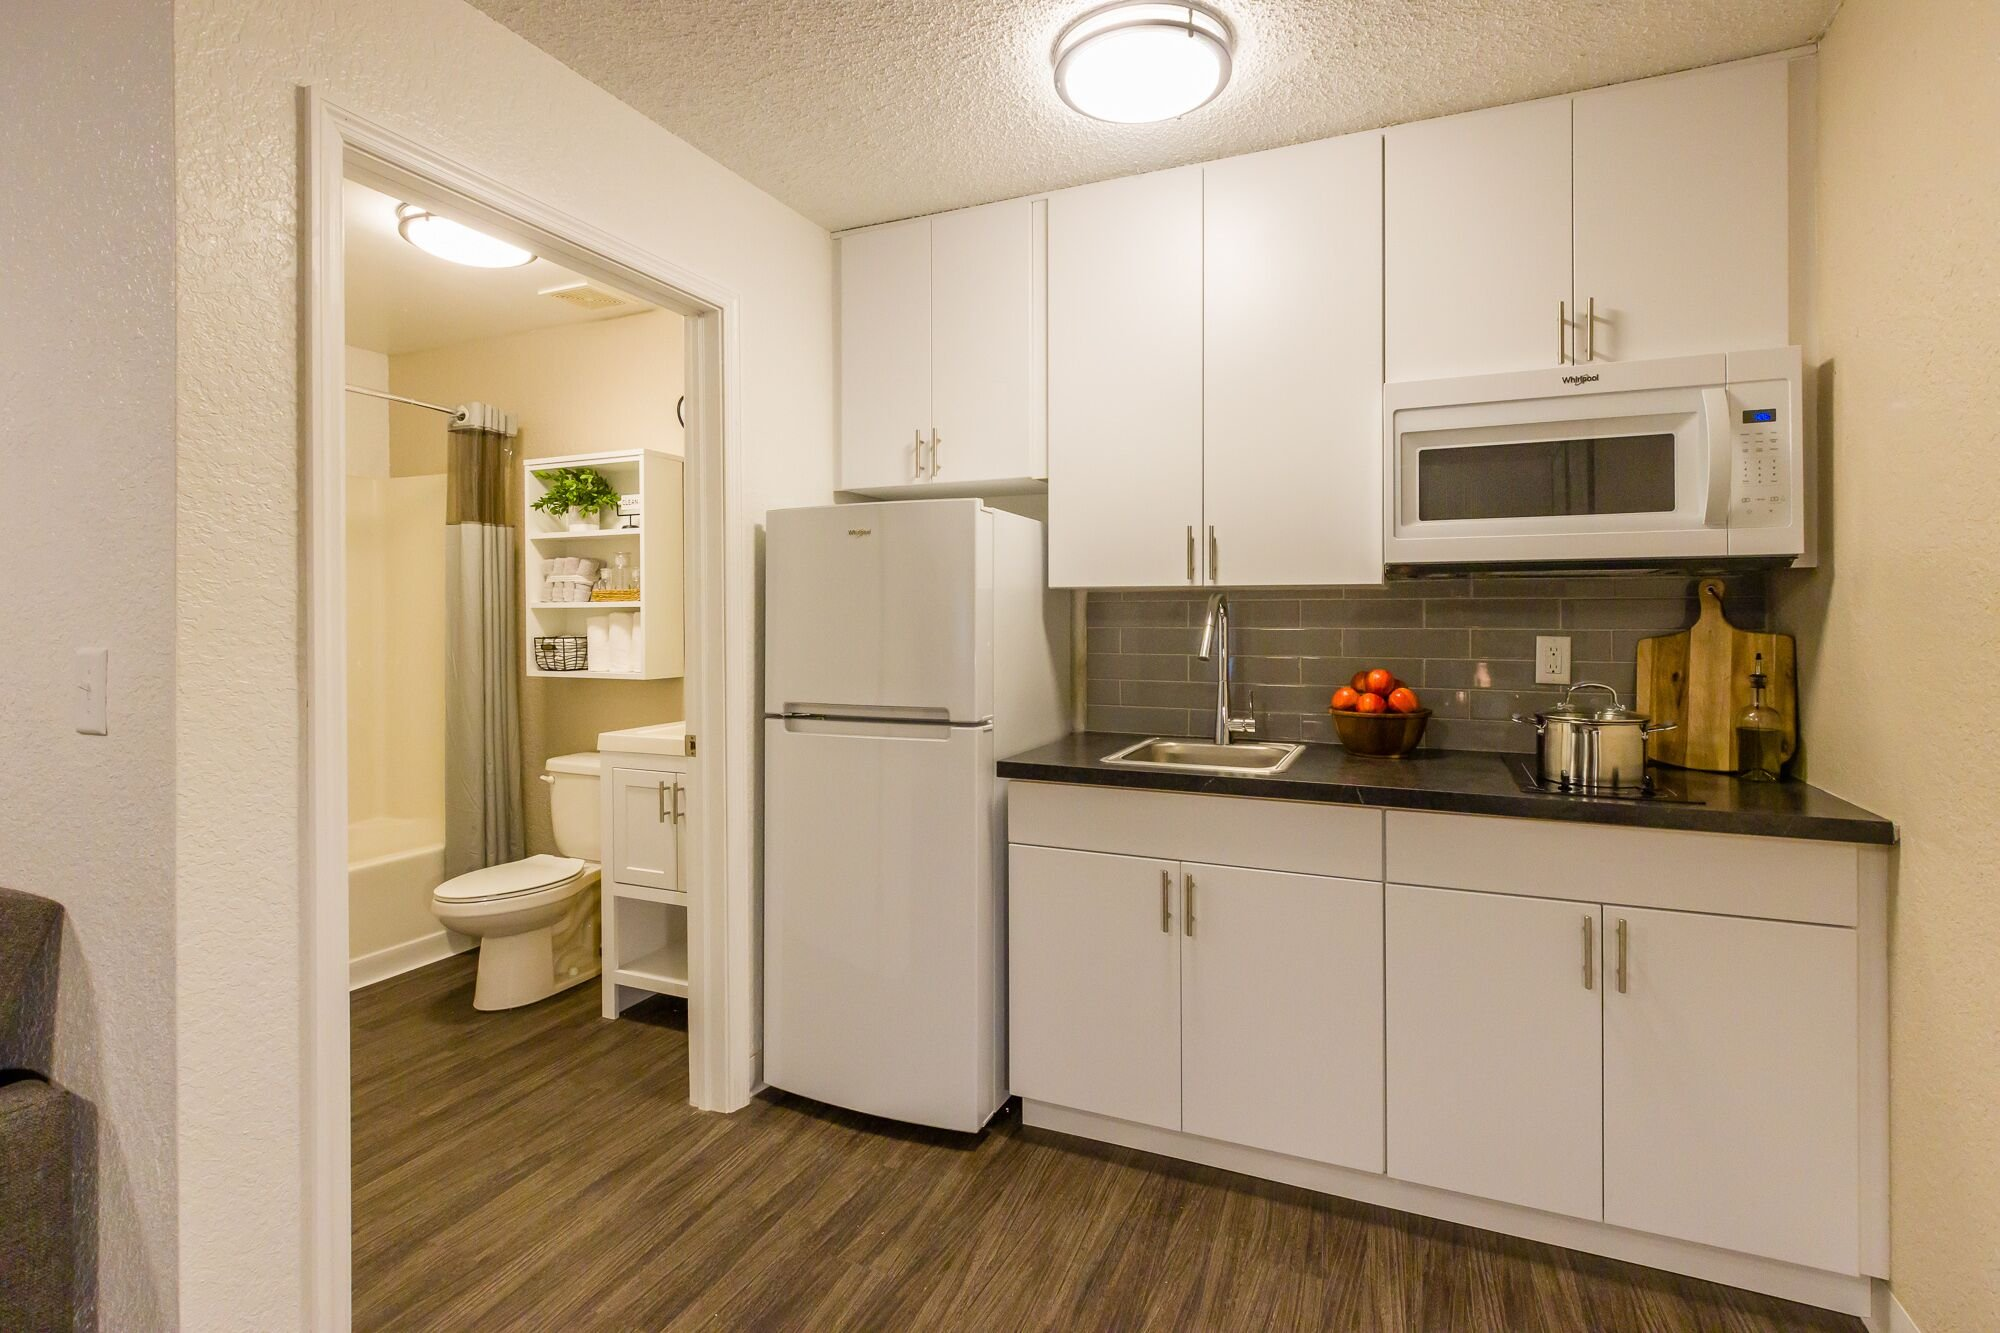 InTown Suites Extended Stay Fort Lauderdale FL